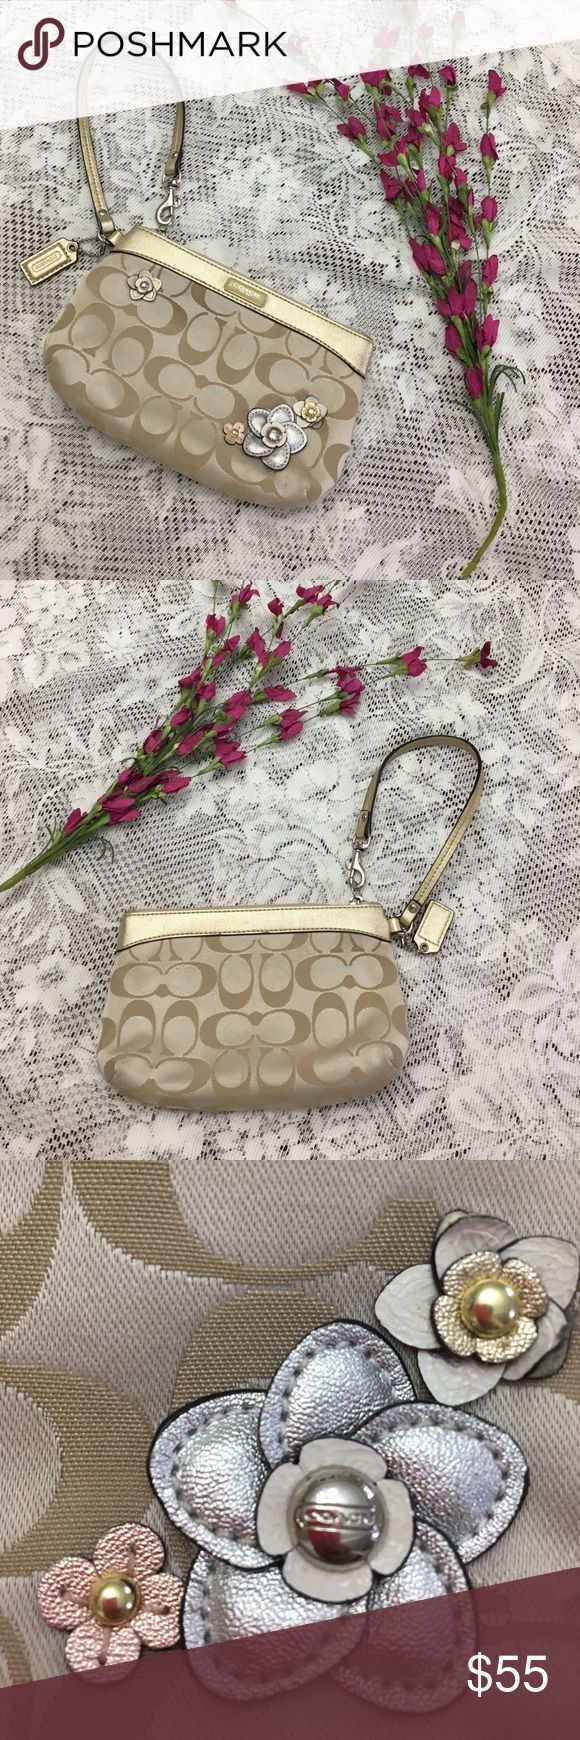 ⭐️Gold Signature Flower Appliqué Coach Wristlet Authentic Coach Signature Floral Applique Medium Wristlet!  This piece is so pretty and feminine. It's big enough to hold a iPhone 6 Plus! Its big! This features: Signature fabric with floral applique details and leather trim * Interior Pink Sateen Fabric * Interior slip pocket. * Zip top closure with dogleash clip. Coach Bags Clutches & Wristlets